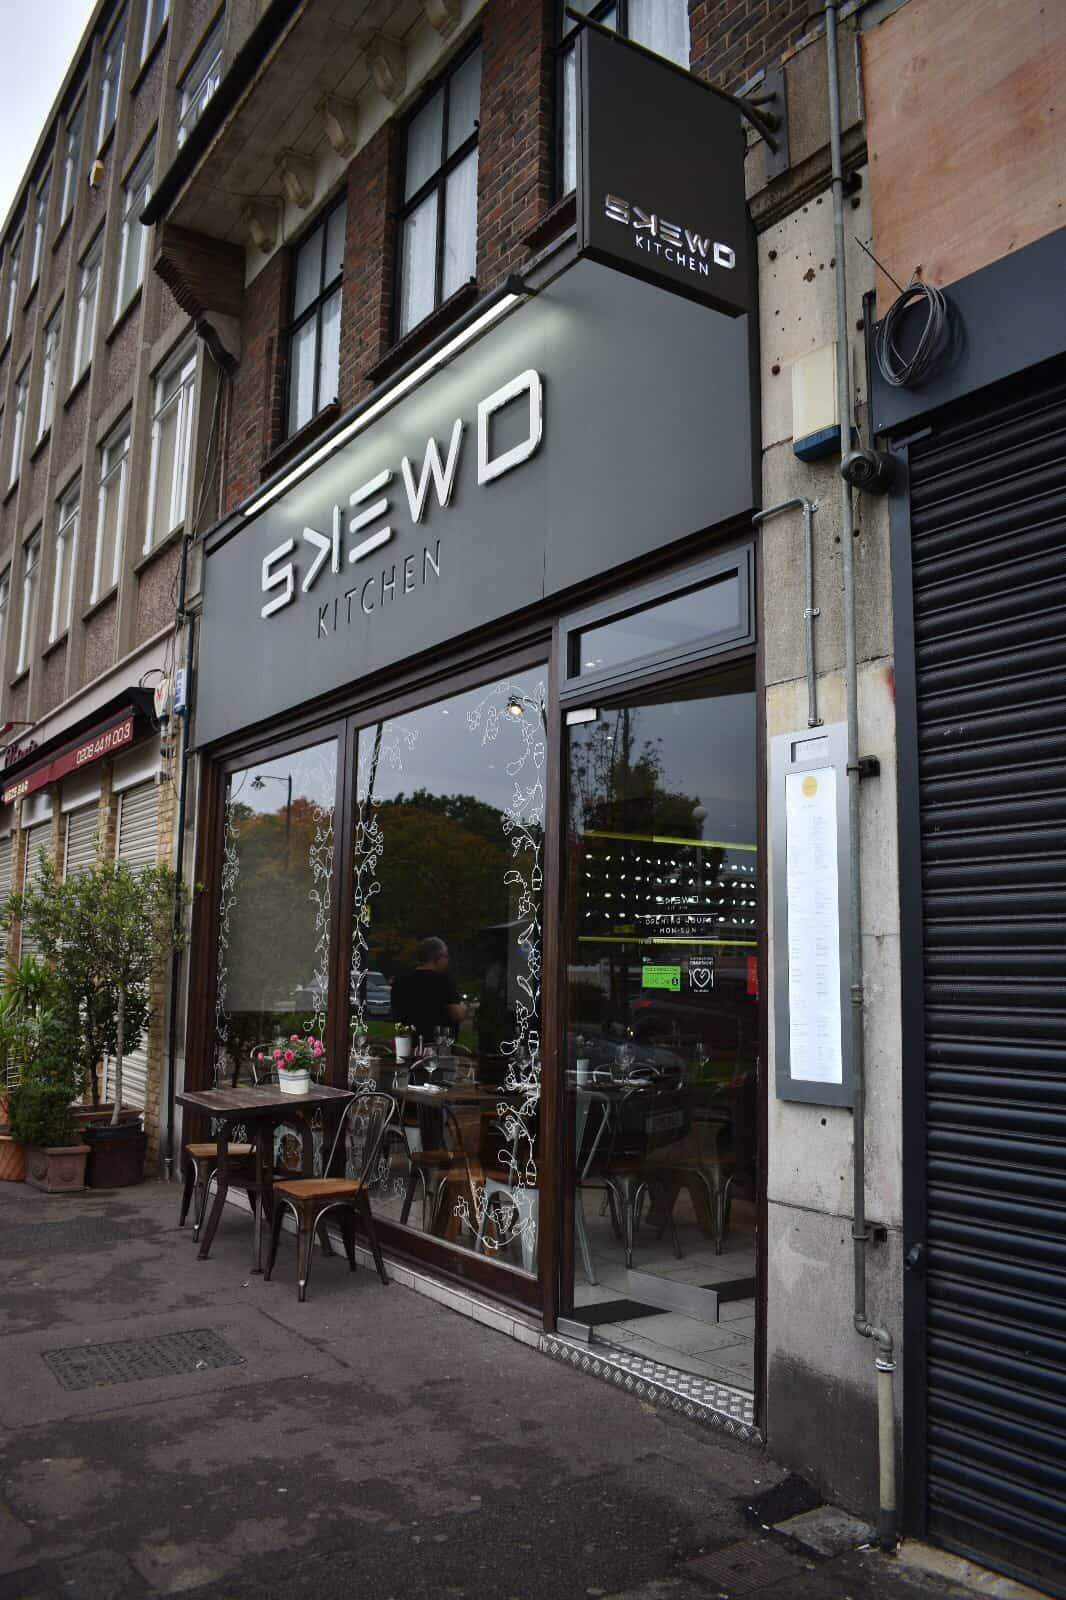 Skewd Restaurant in Barnet